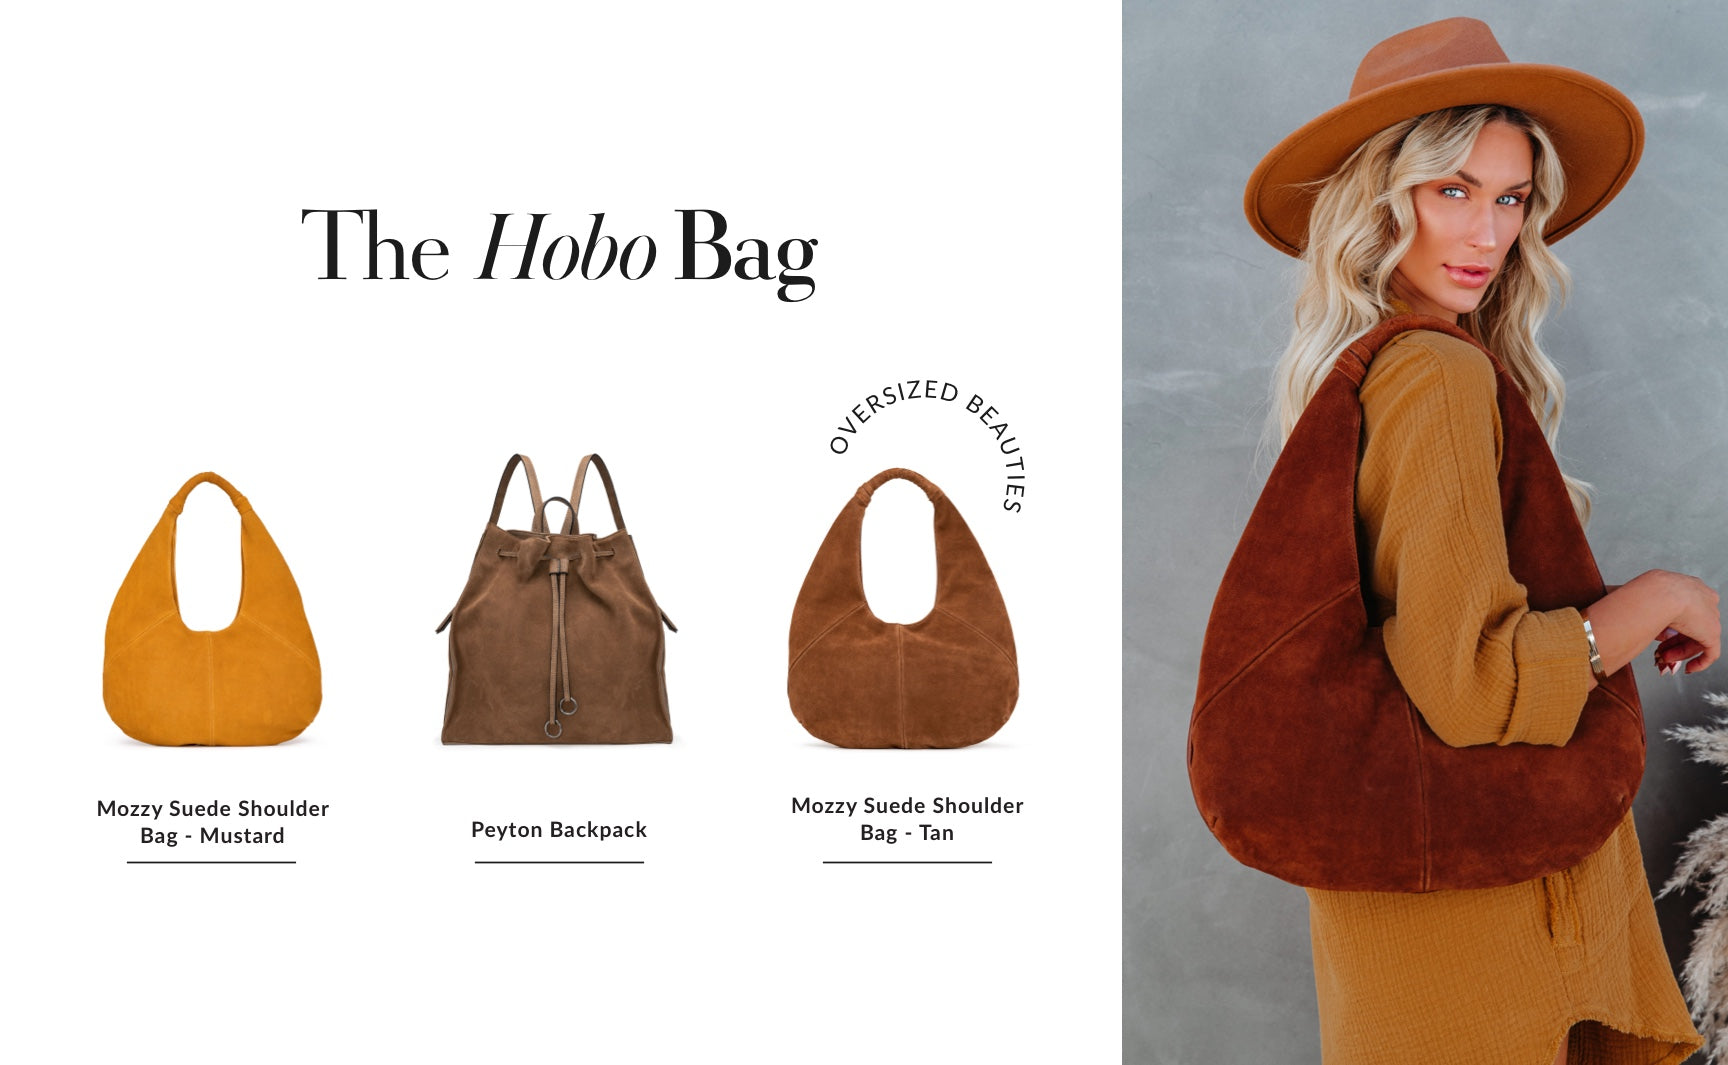 As you may have noticed, relaxed is the theme here. Even your handbag needs a little bit of a slouch! Find a faux suede one in a mustard or mocha shade so as to complement literally everything in your closet. These oversized beauties will hold all of your work to weekend essentials. Shop Hobo Handbags